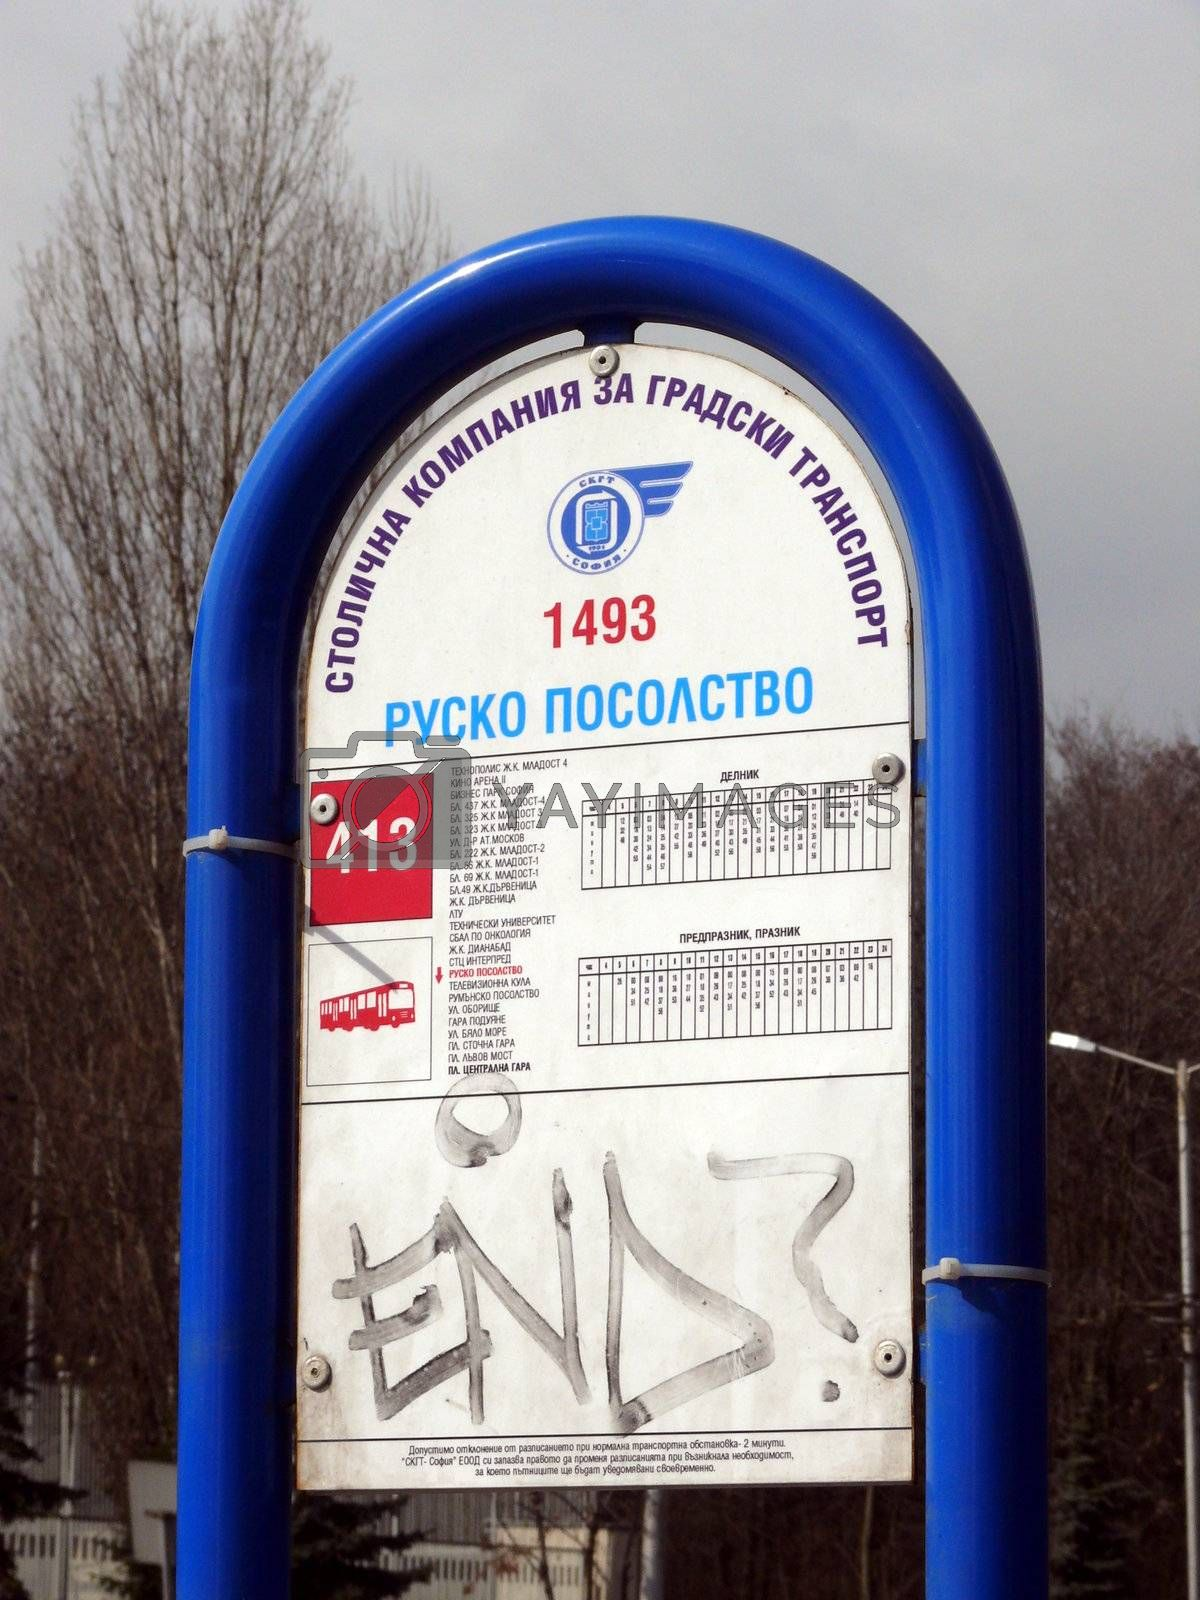 Bus stop near embassy of Russian Federation in Sofia, Bulgaria